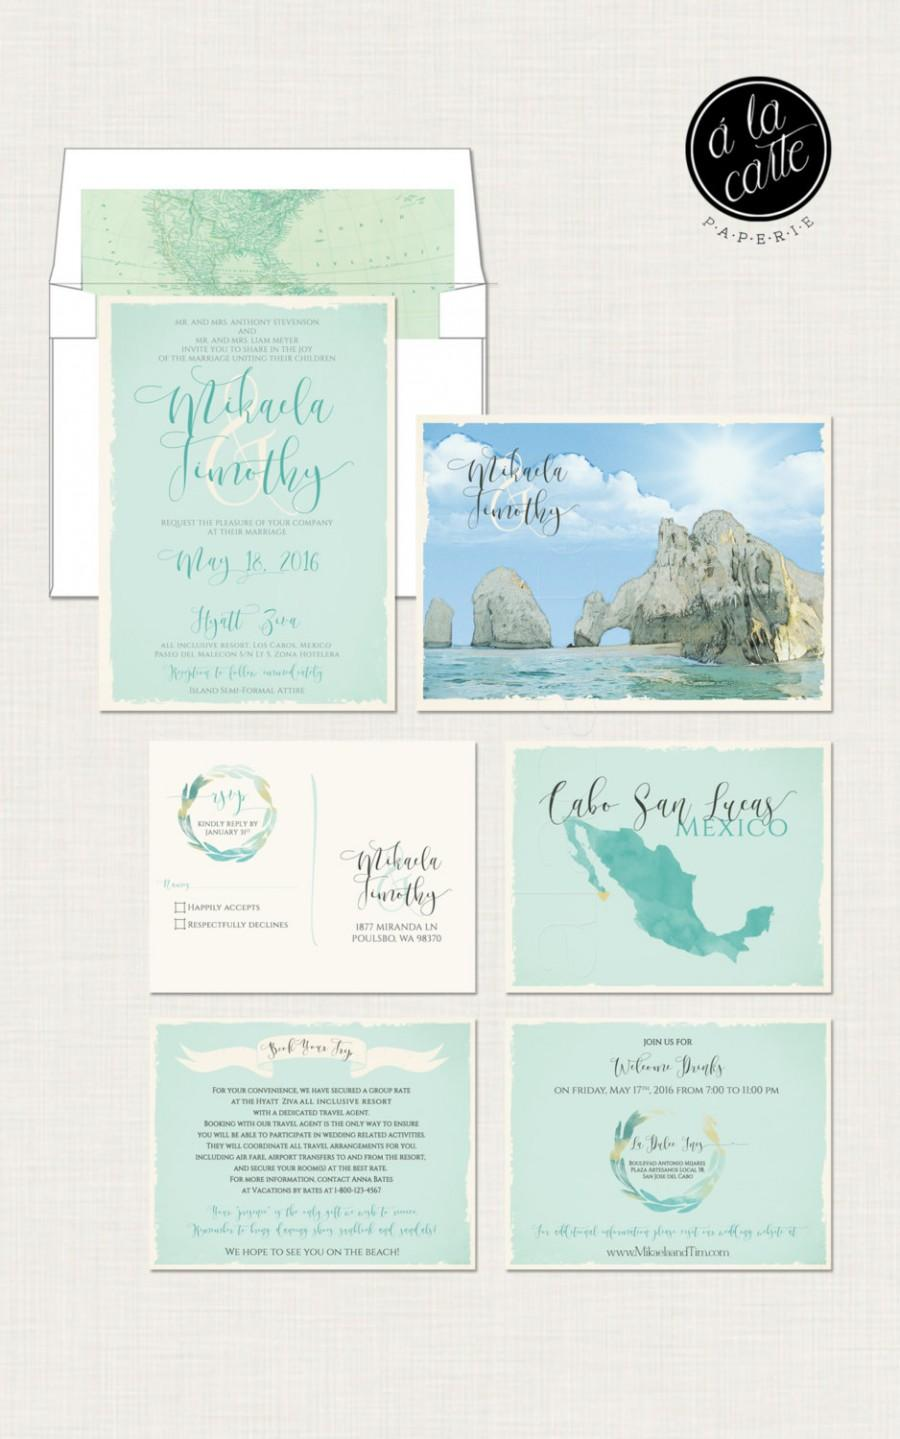 زفاف - Destination wedding invitation Cabo San Lucas Los Cabos Beach Mexico bilingual  illustrated wedding invitation Blue Green - Deposit Payment